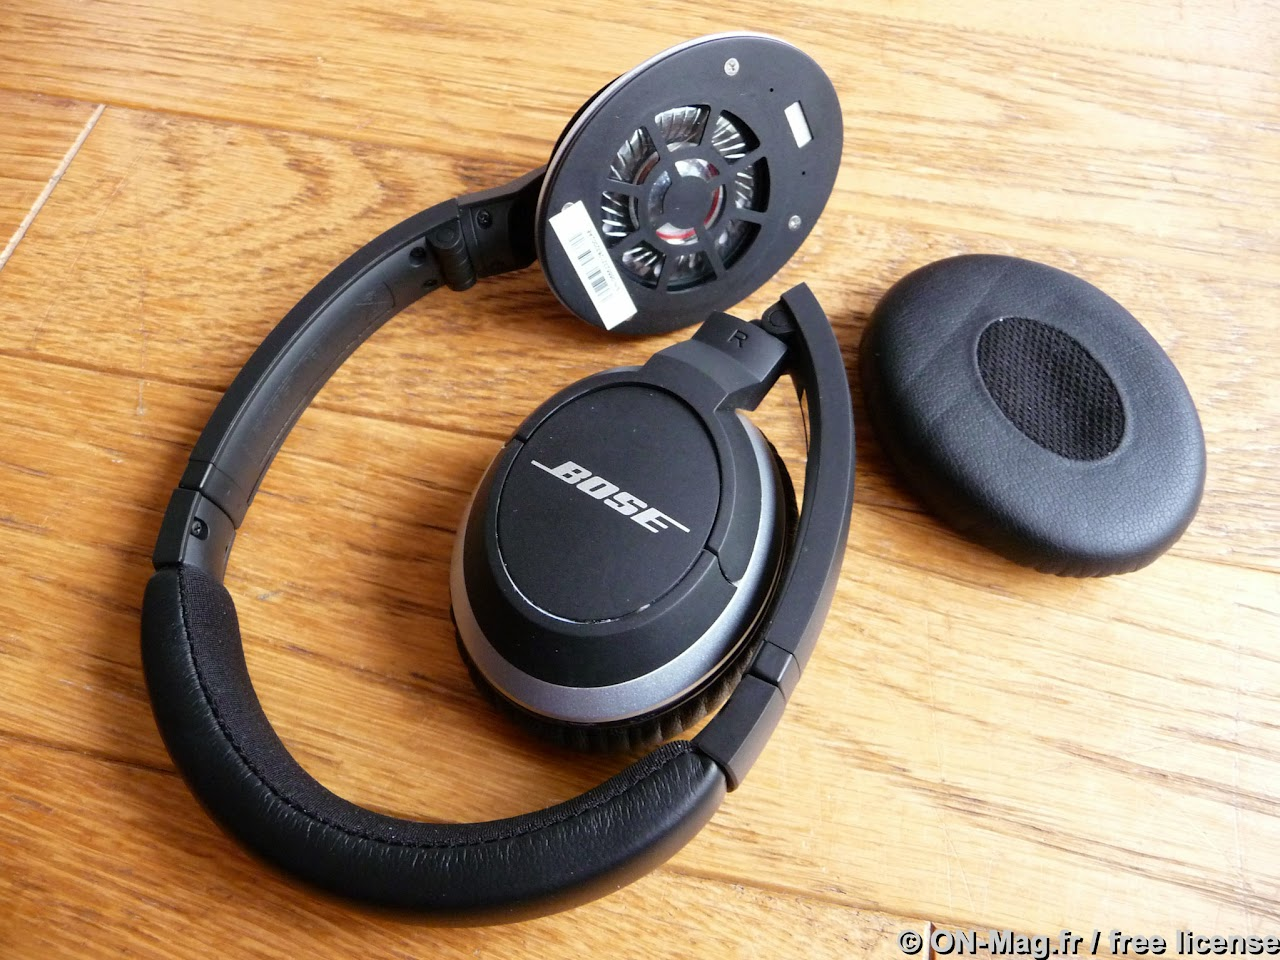 [Test] Bose OE2/OE2i : un casque nomade, supra-auriculaire ...